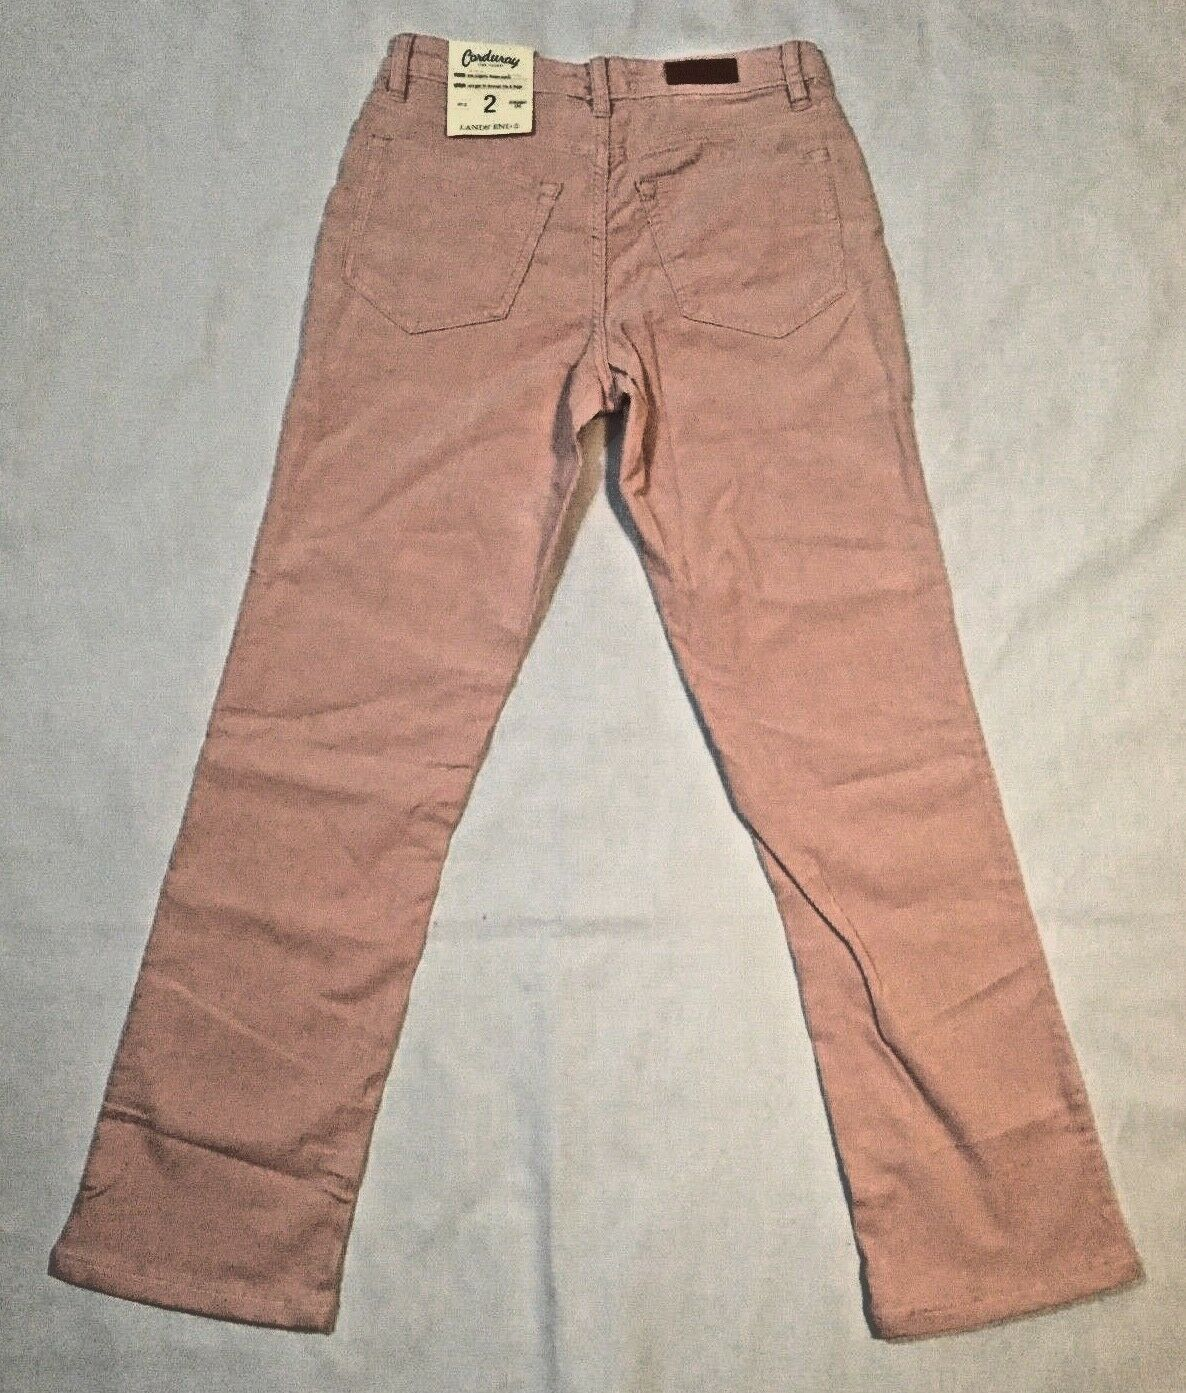 Lands' End Women's Mid Rise Straight Leg Corduroy Pants Size 2 New with Tags